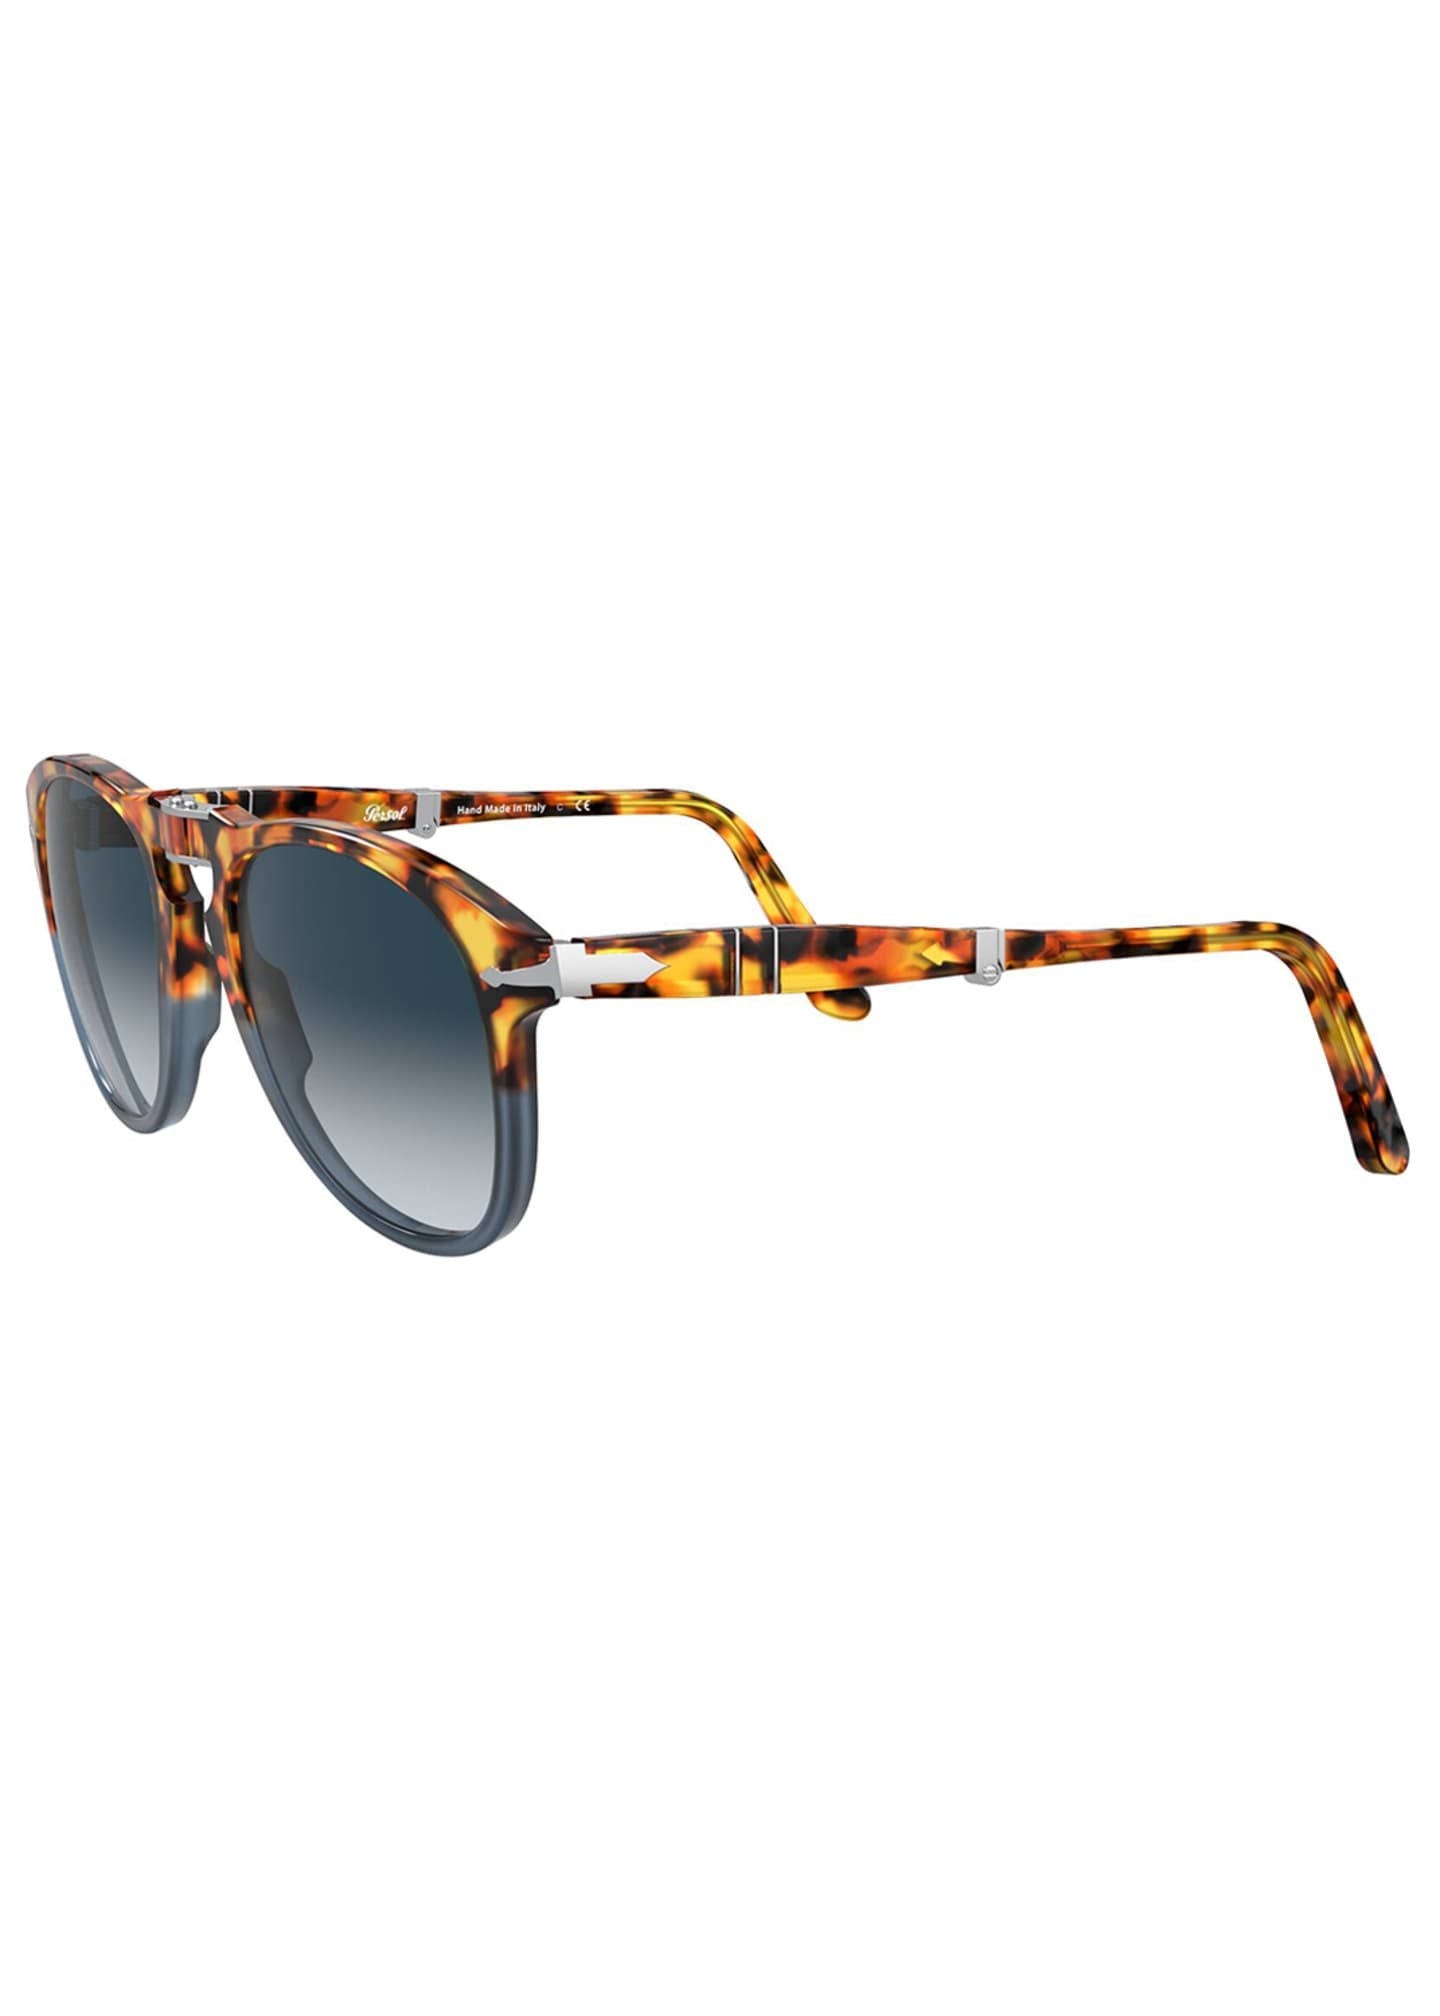 Image 4 of 4: Men's Gradient Tortoiseshell Acetate Folding Sunglasses